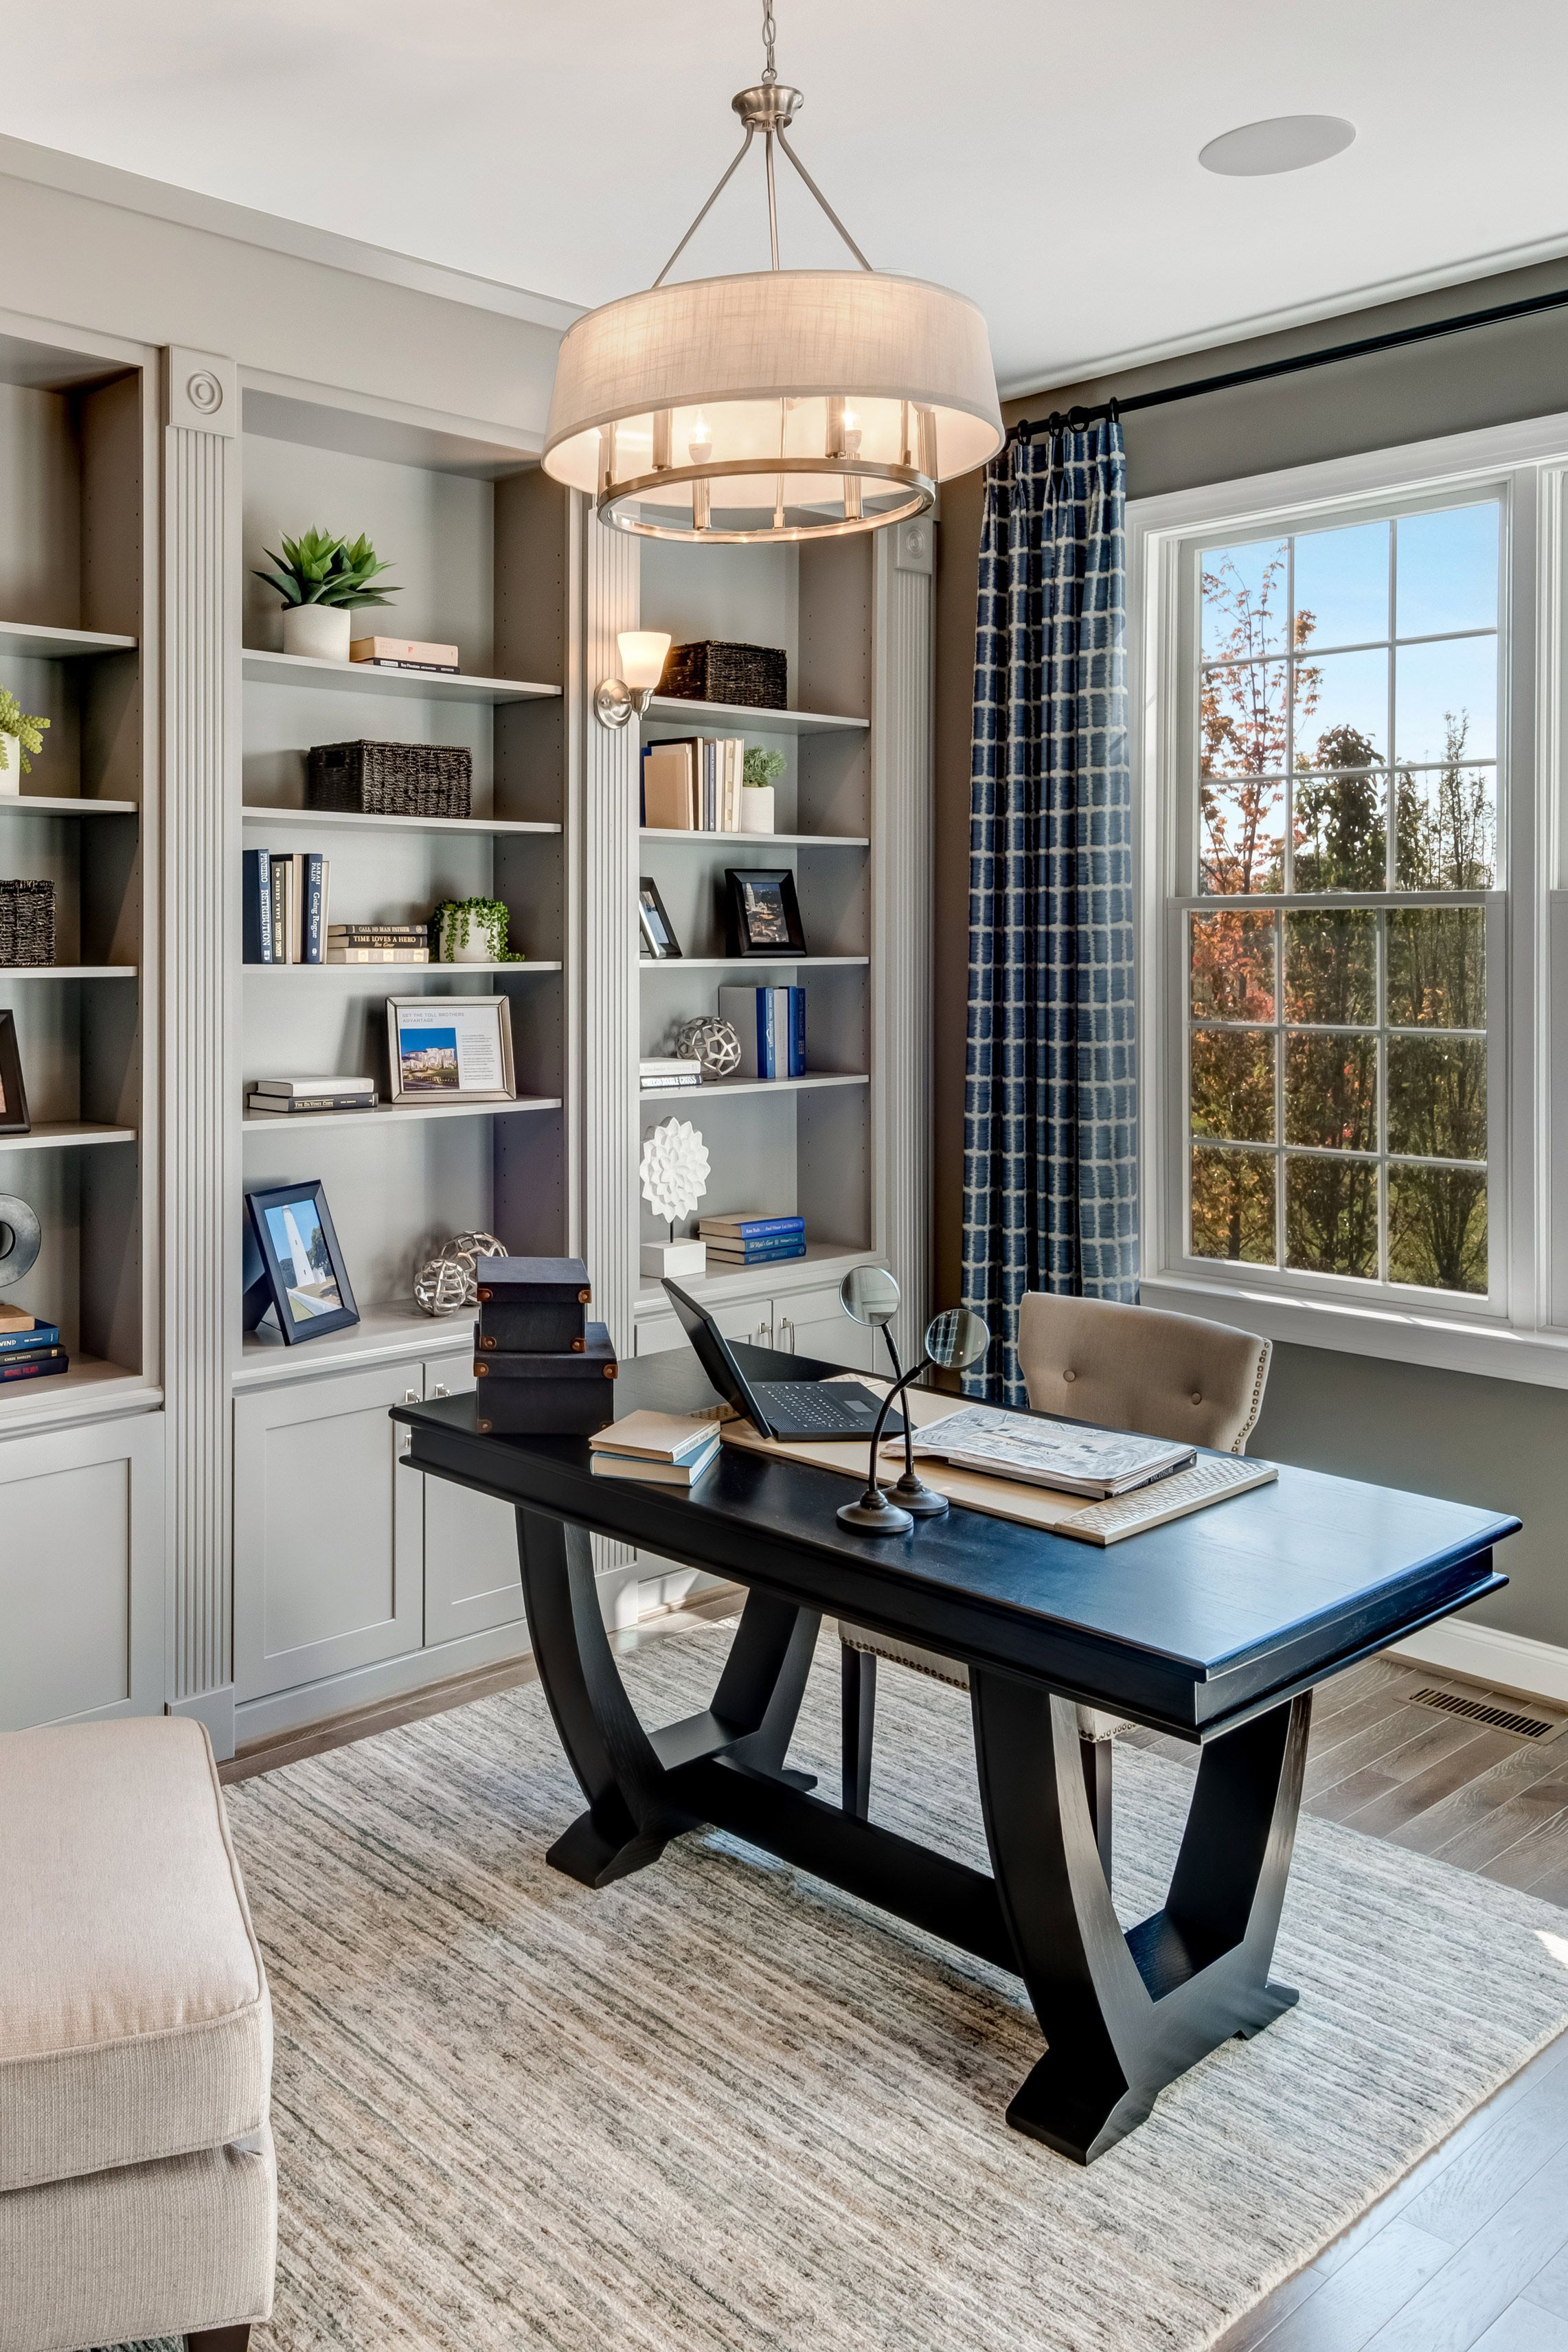 Interior design trends spice up your home decor for fall also best office decorating images in rh pinterest